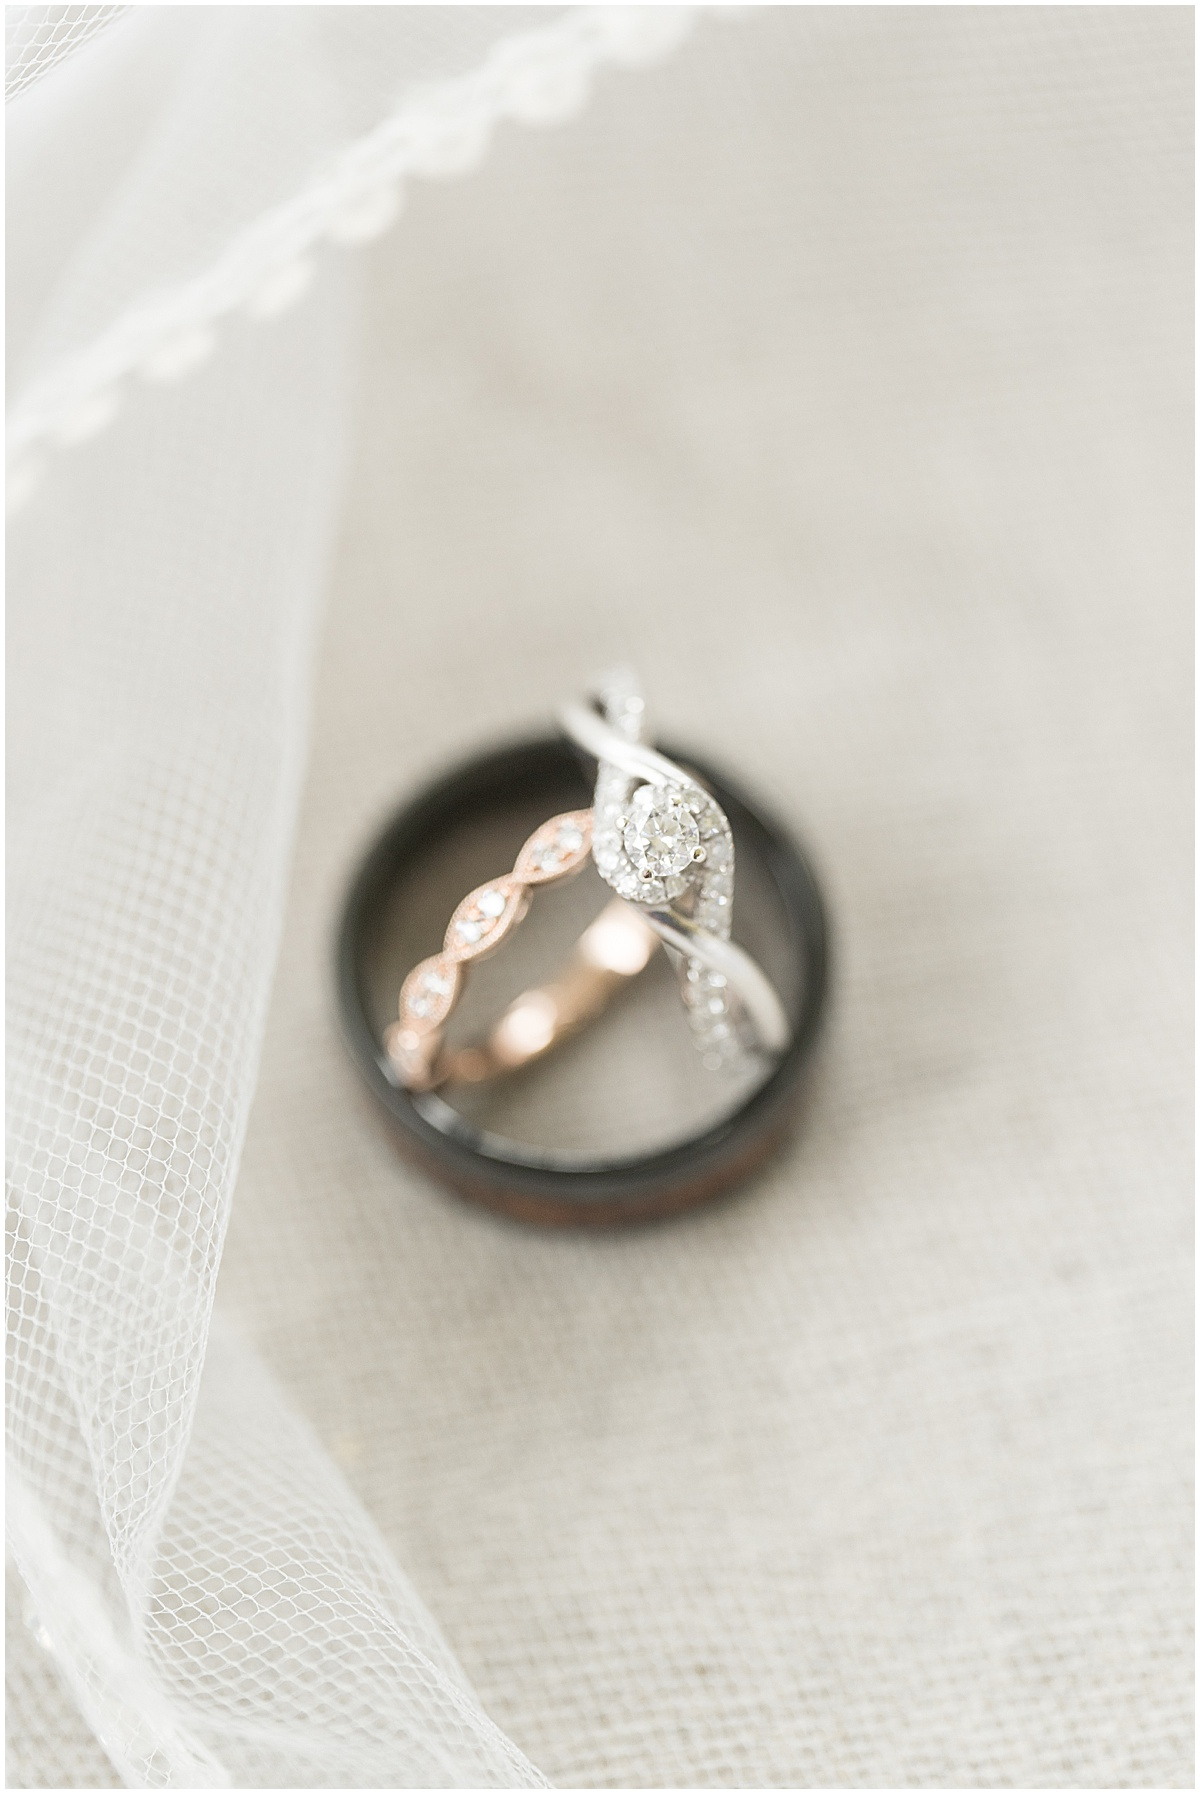 Wedding rings for County Line Orchard wedding in Hobart, Indiana